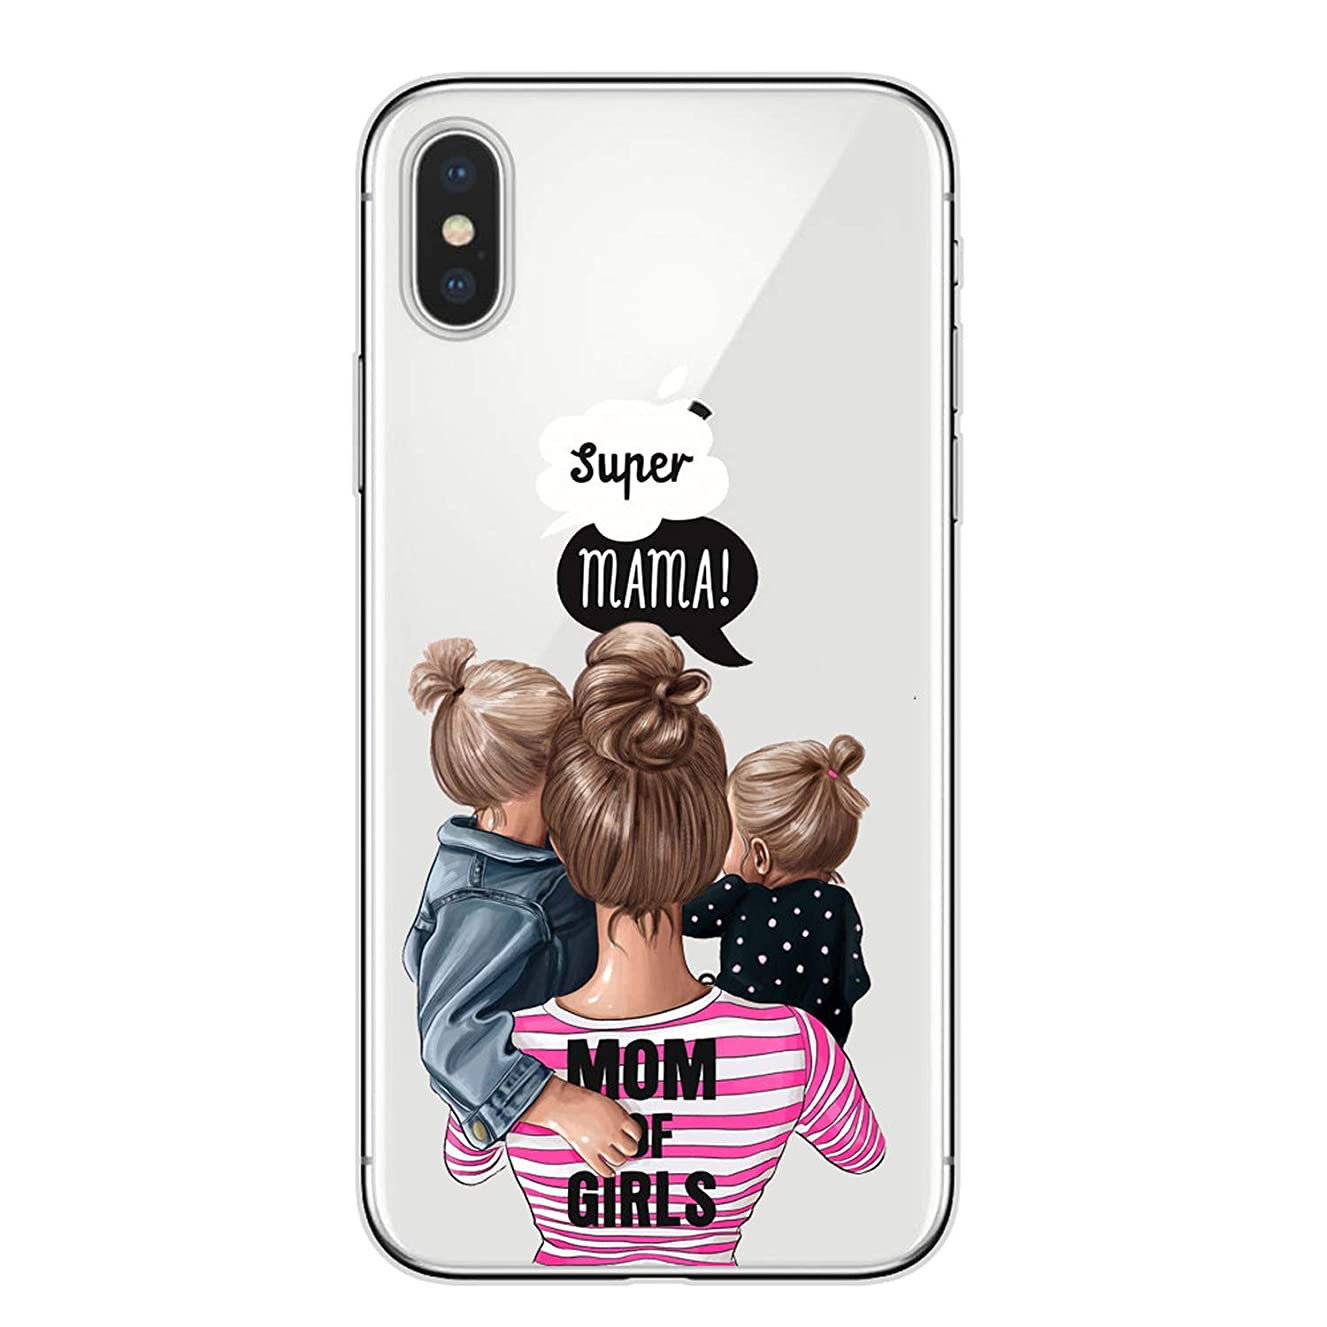 Phone Case Black Brown Hair Baby Mom Girl for iPhone X XR XS Max 6 6s 7 7Plus 8 Plus 5S SE Super Mom Soft TPU Cover Capa,T2771,for iPhone X